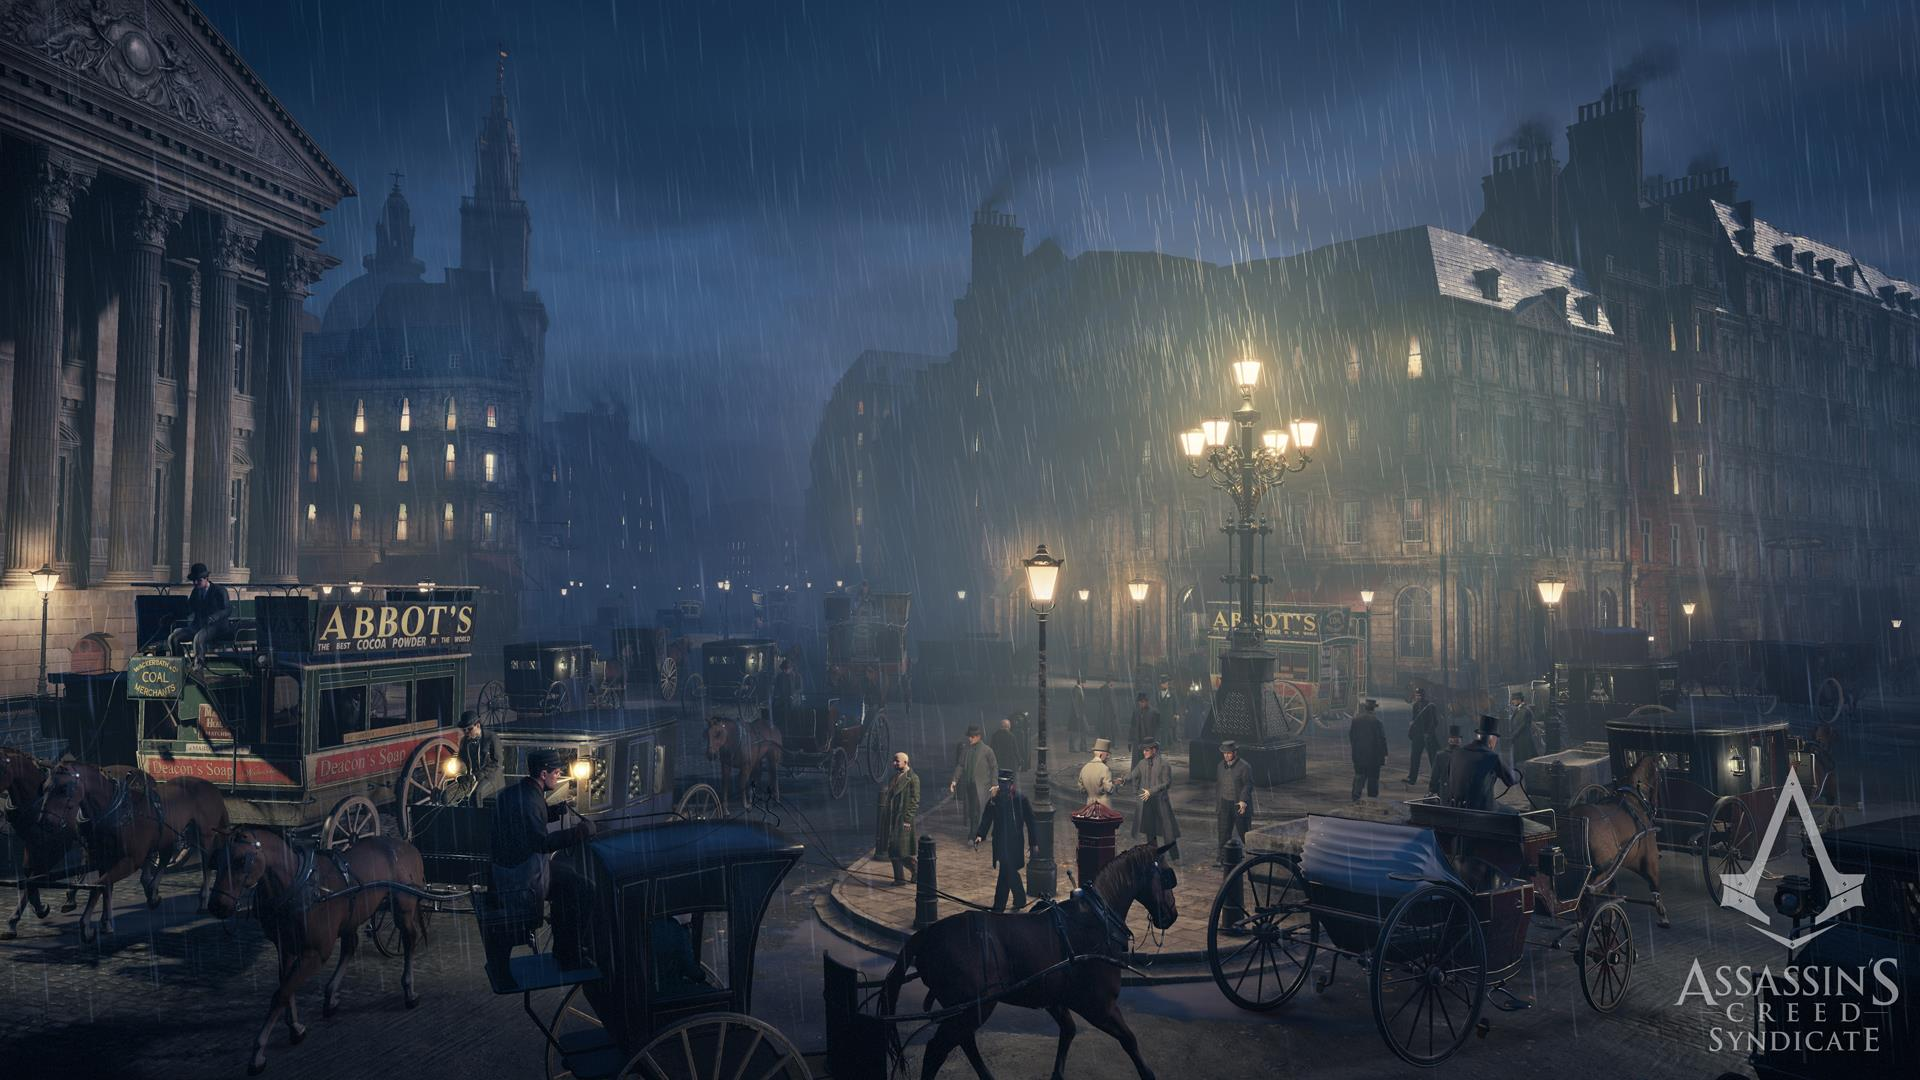 Assassins Creed Syndicate Screens Show The Dark Industrial World